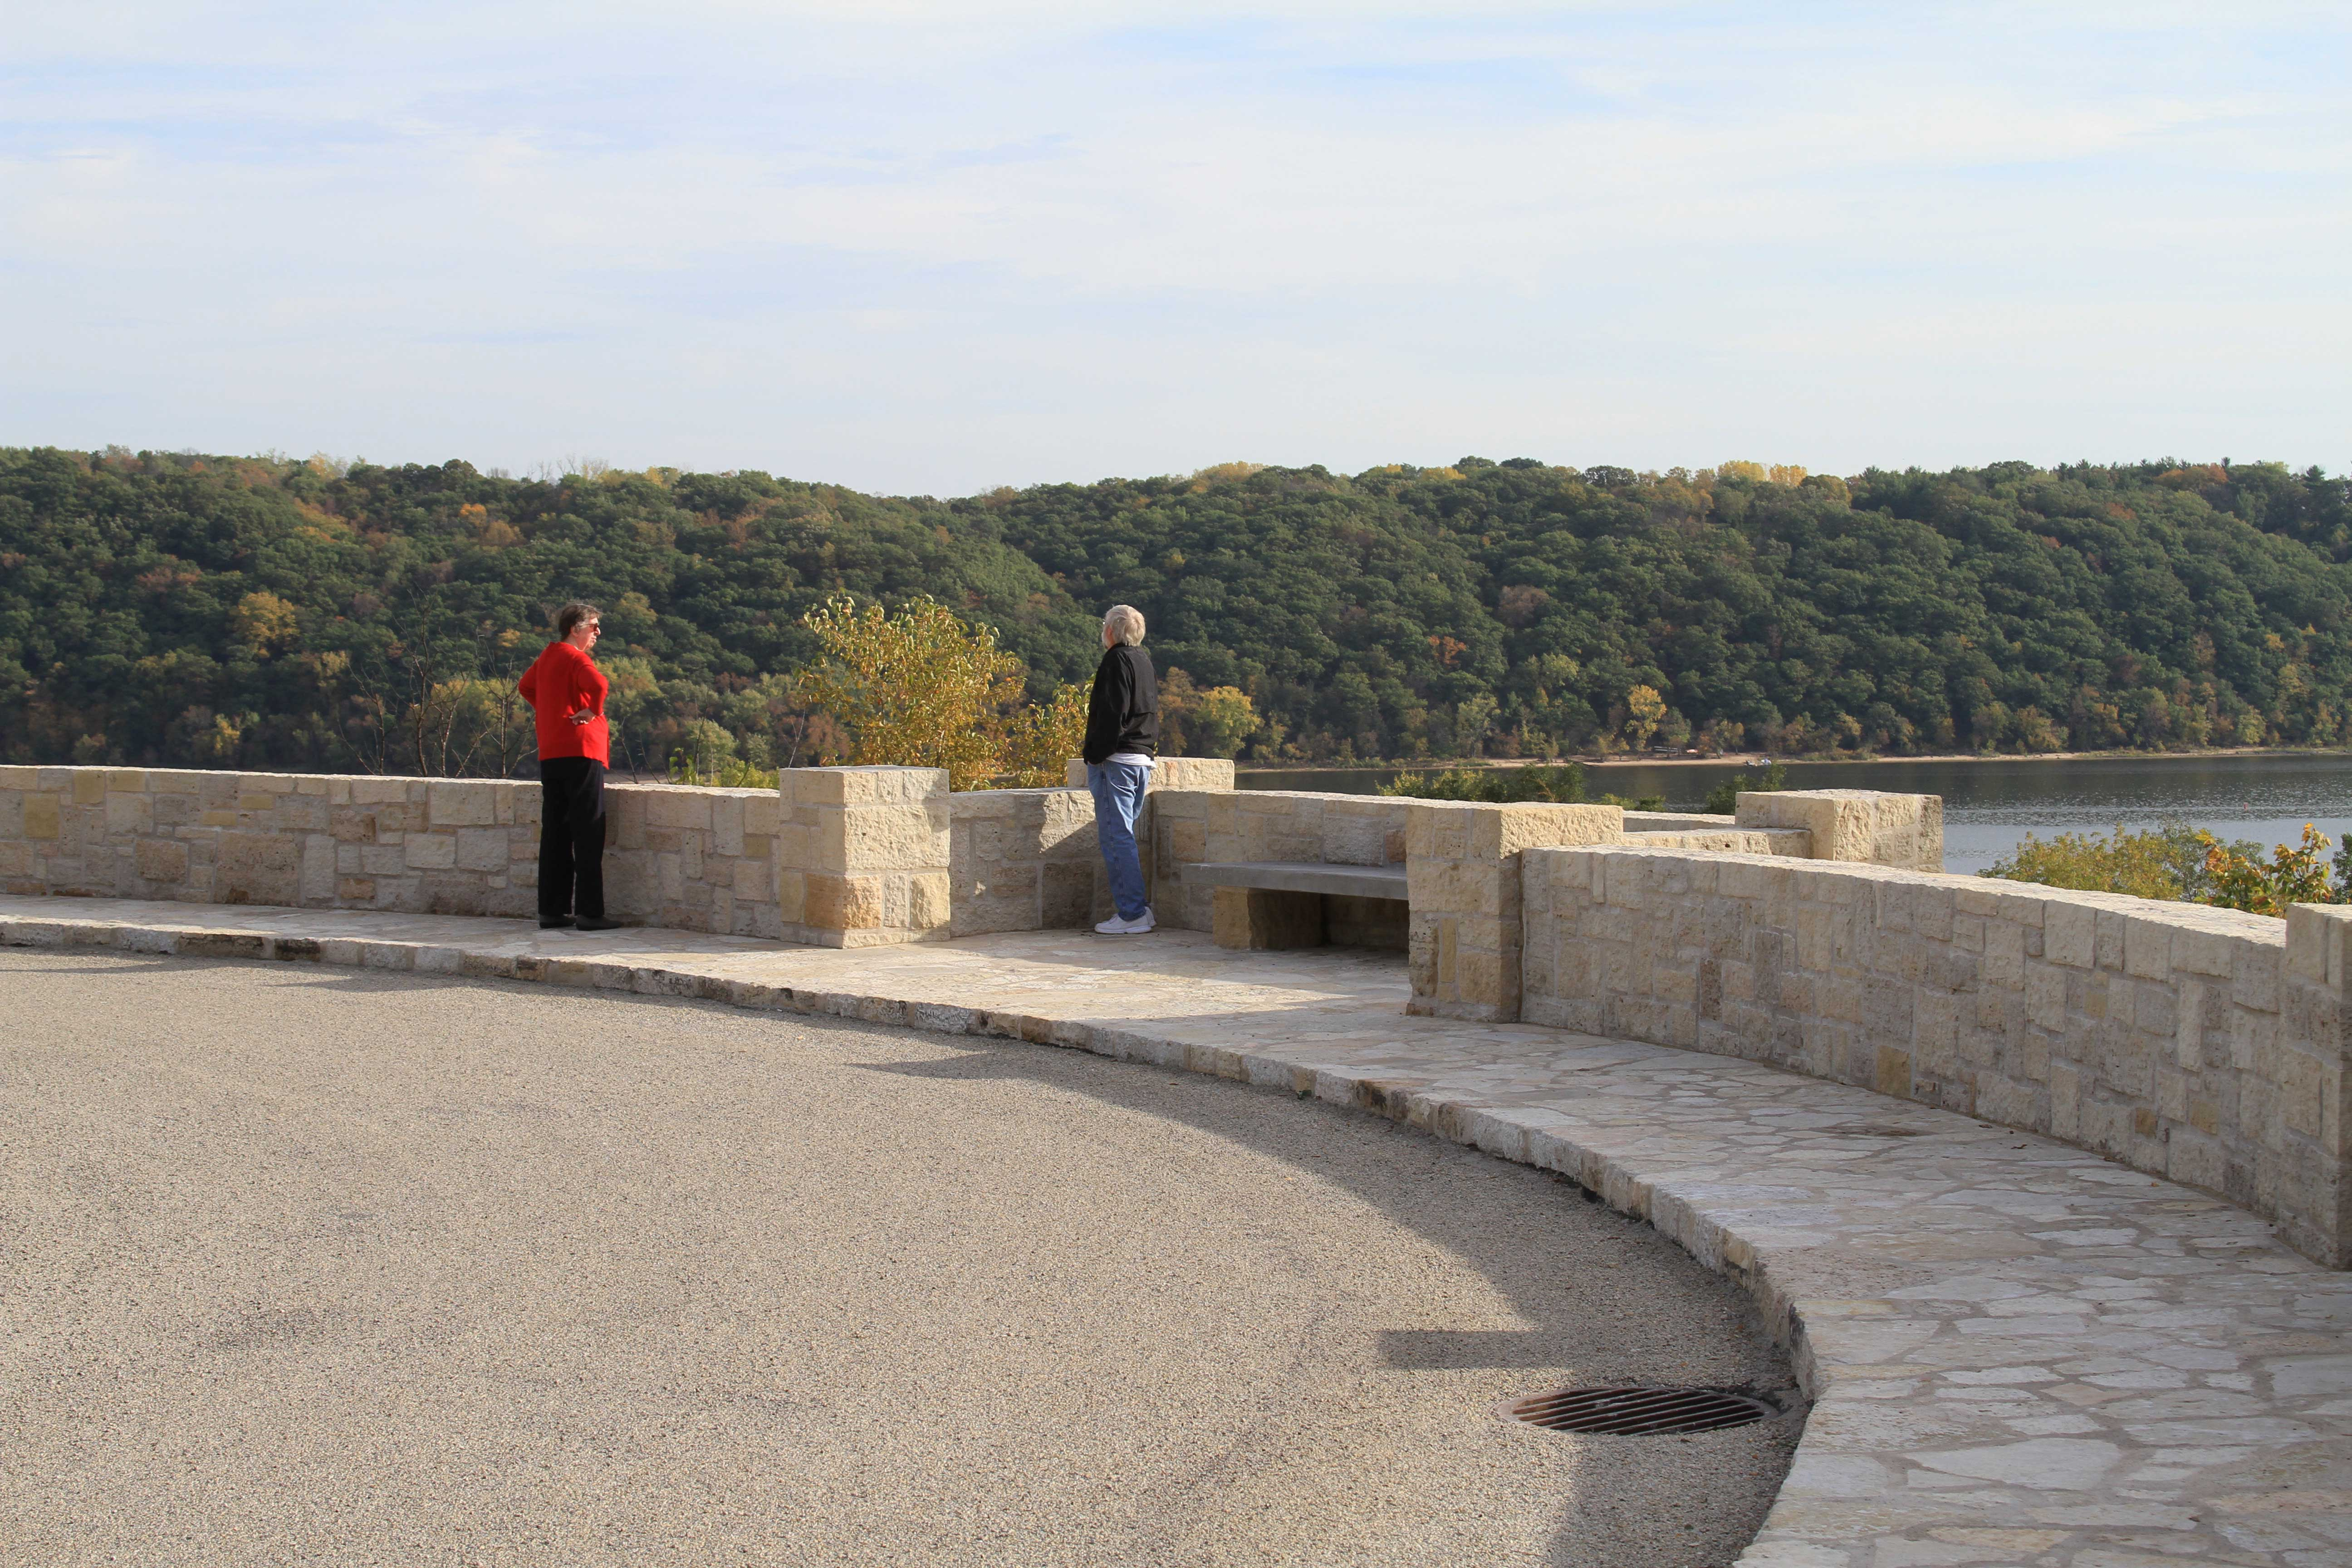 Lake St. Croix Overlook Restoration, also known as Stillwater Overlook South